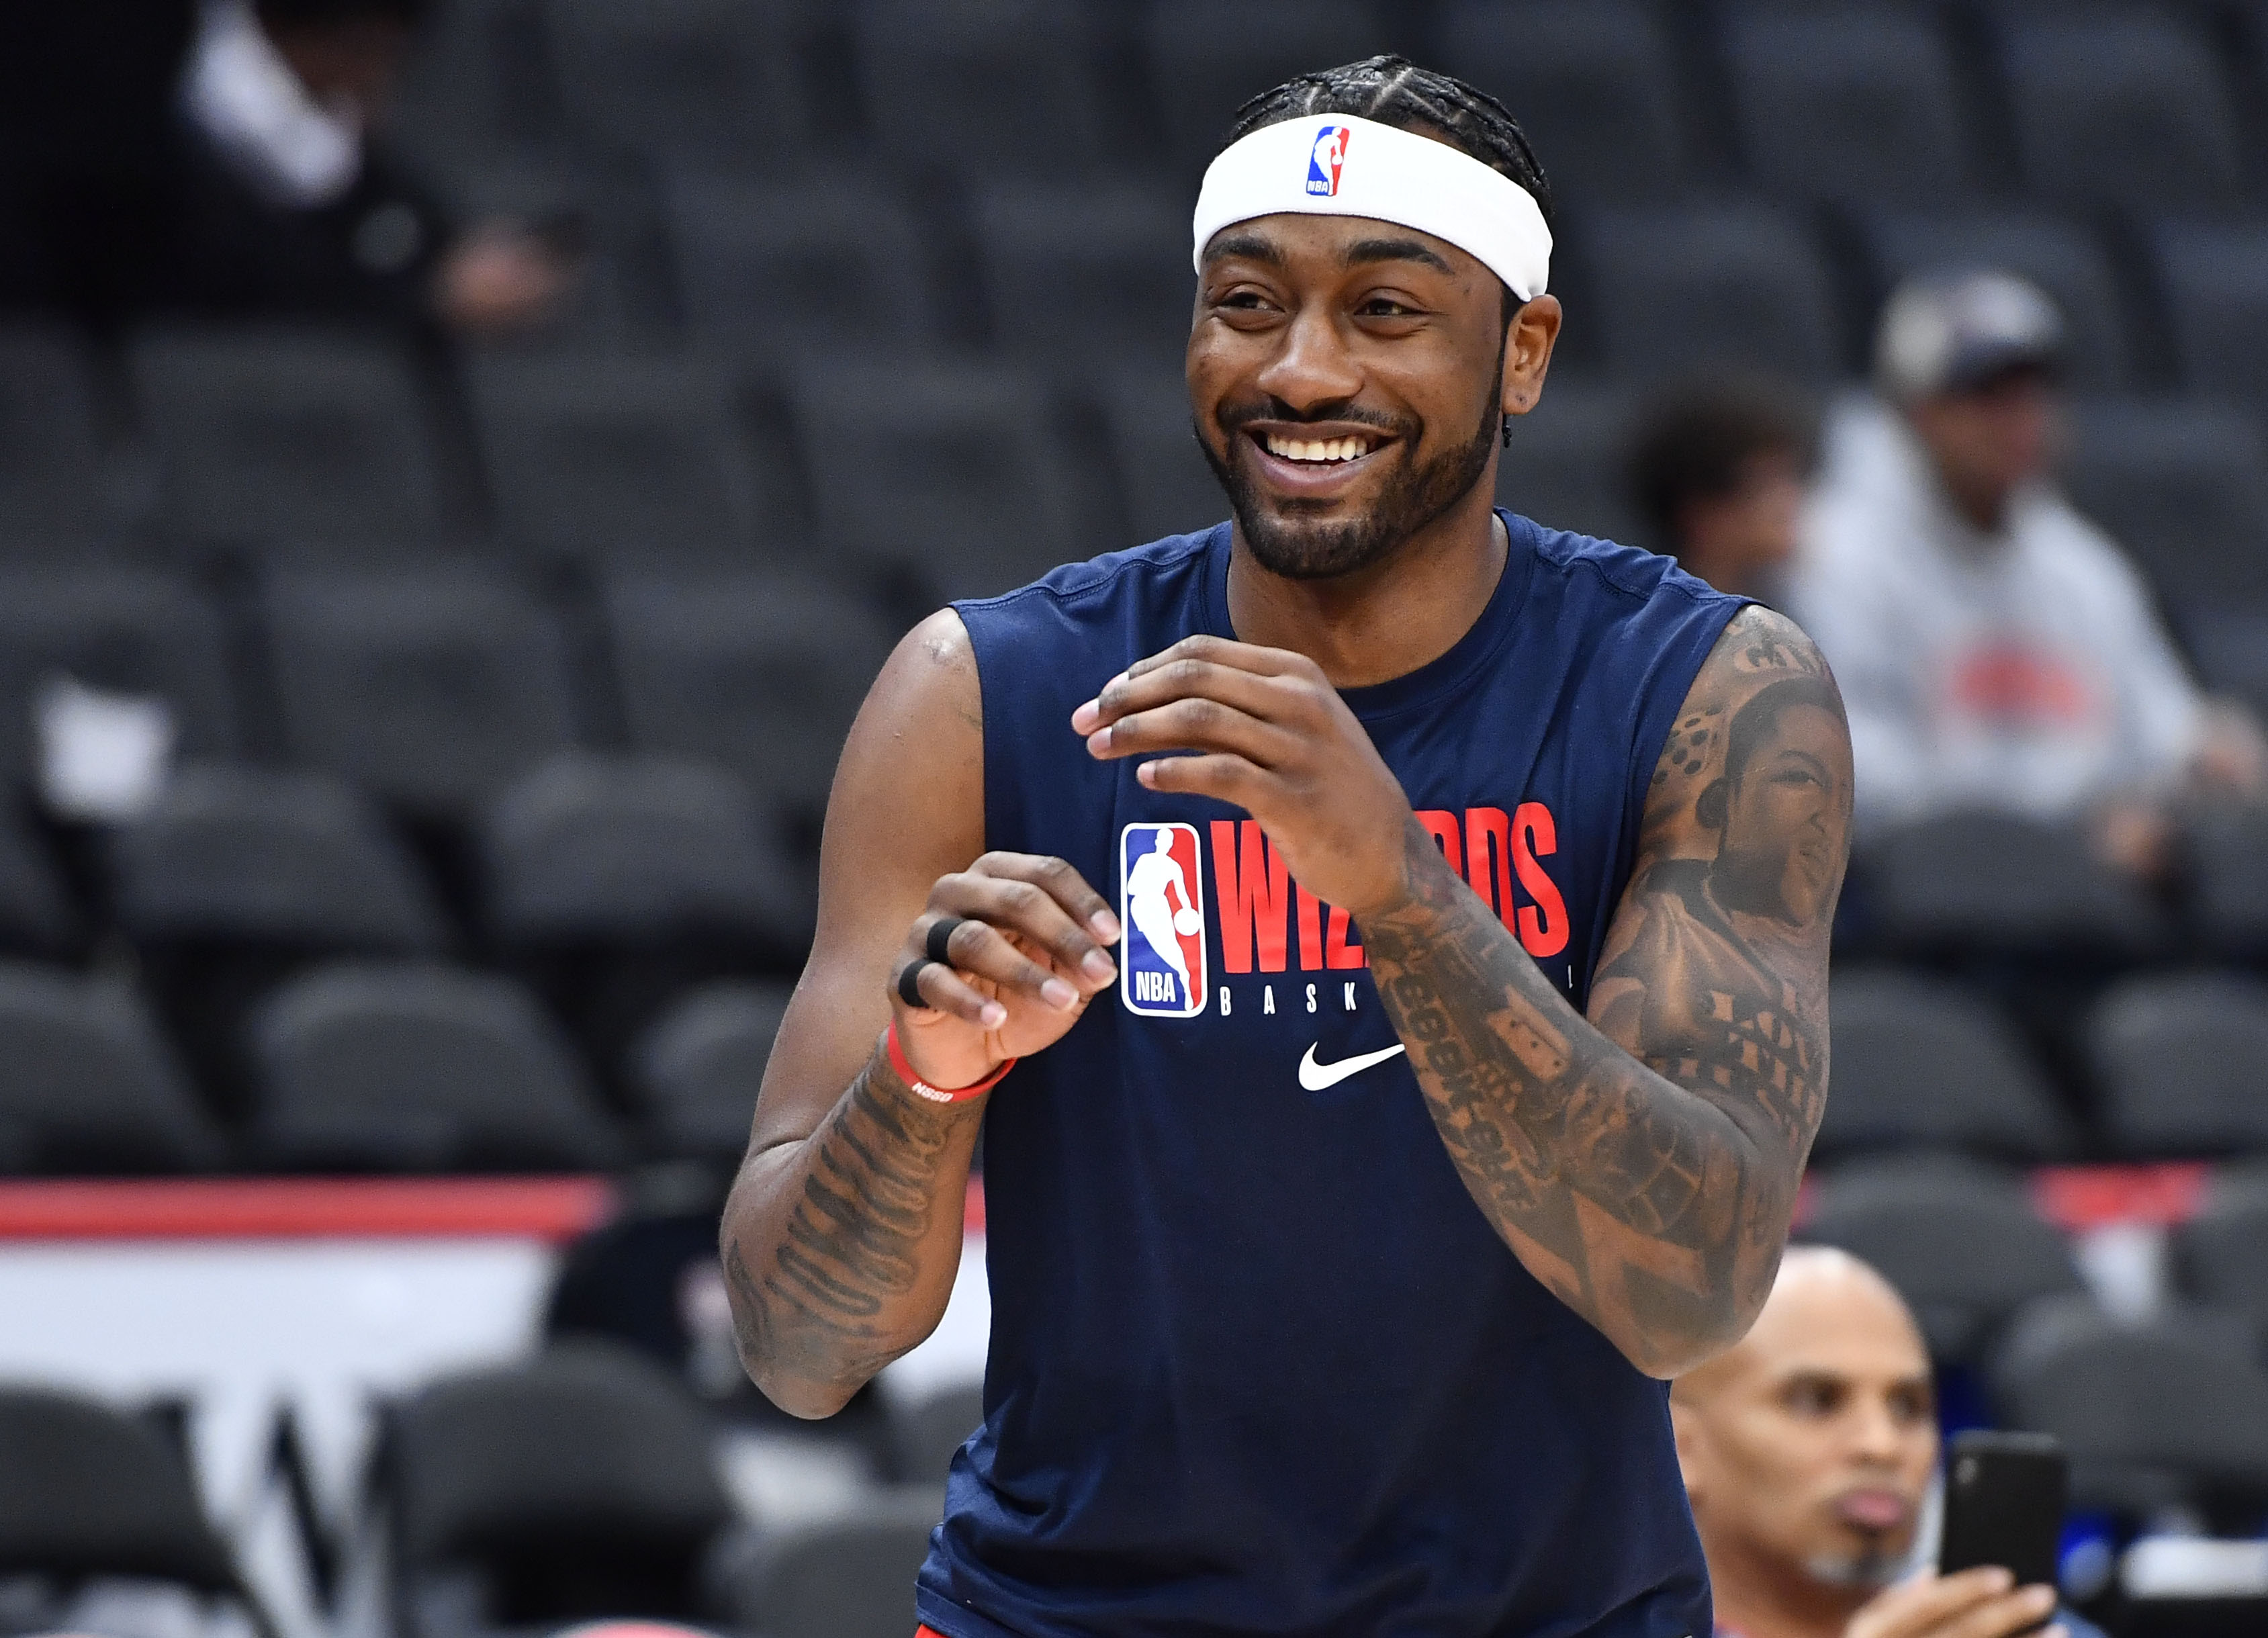 John Wall launches 202 Assist rent assistance program